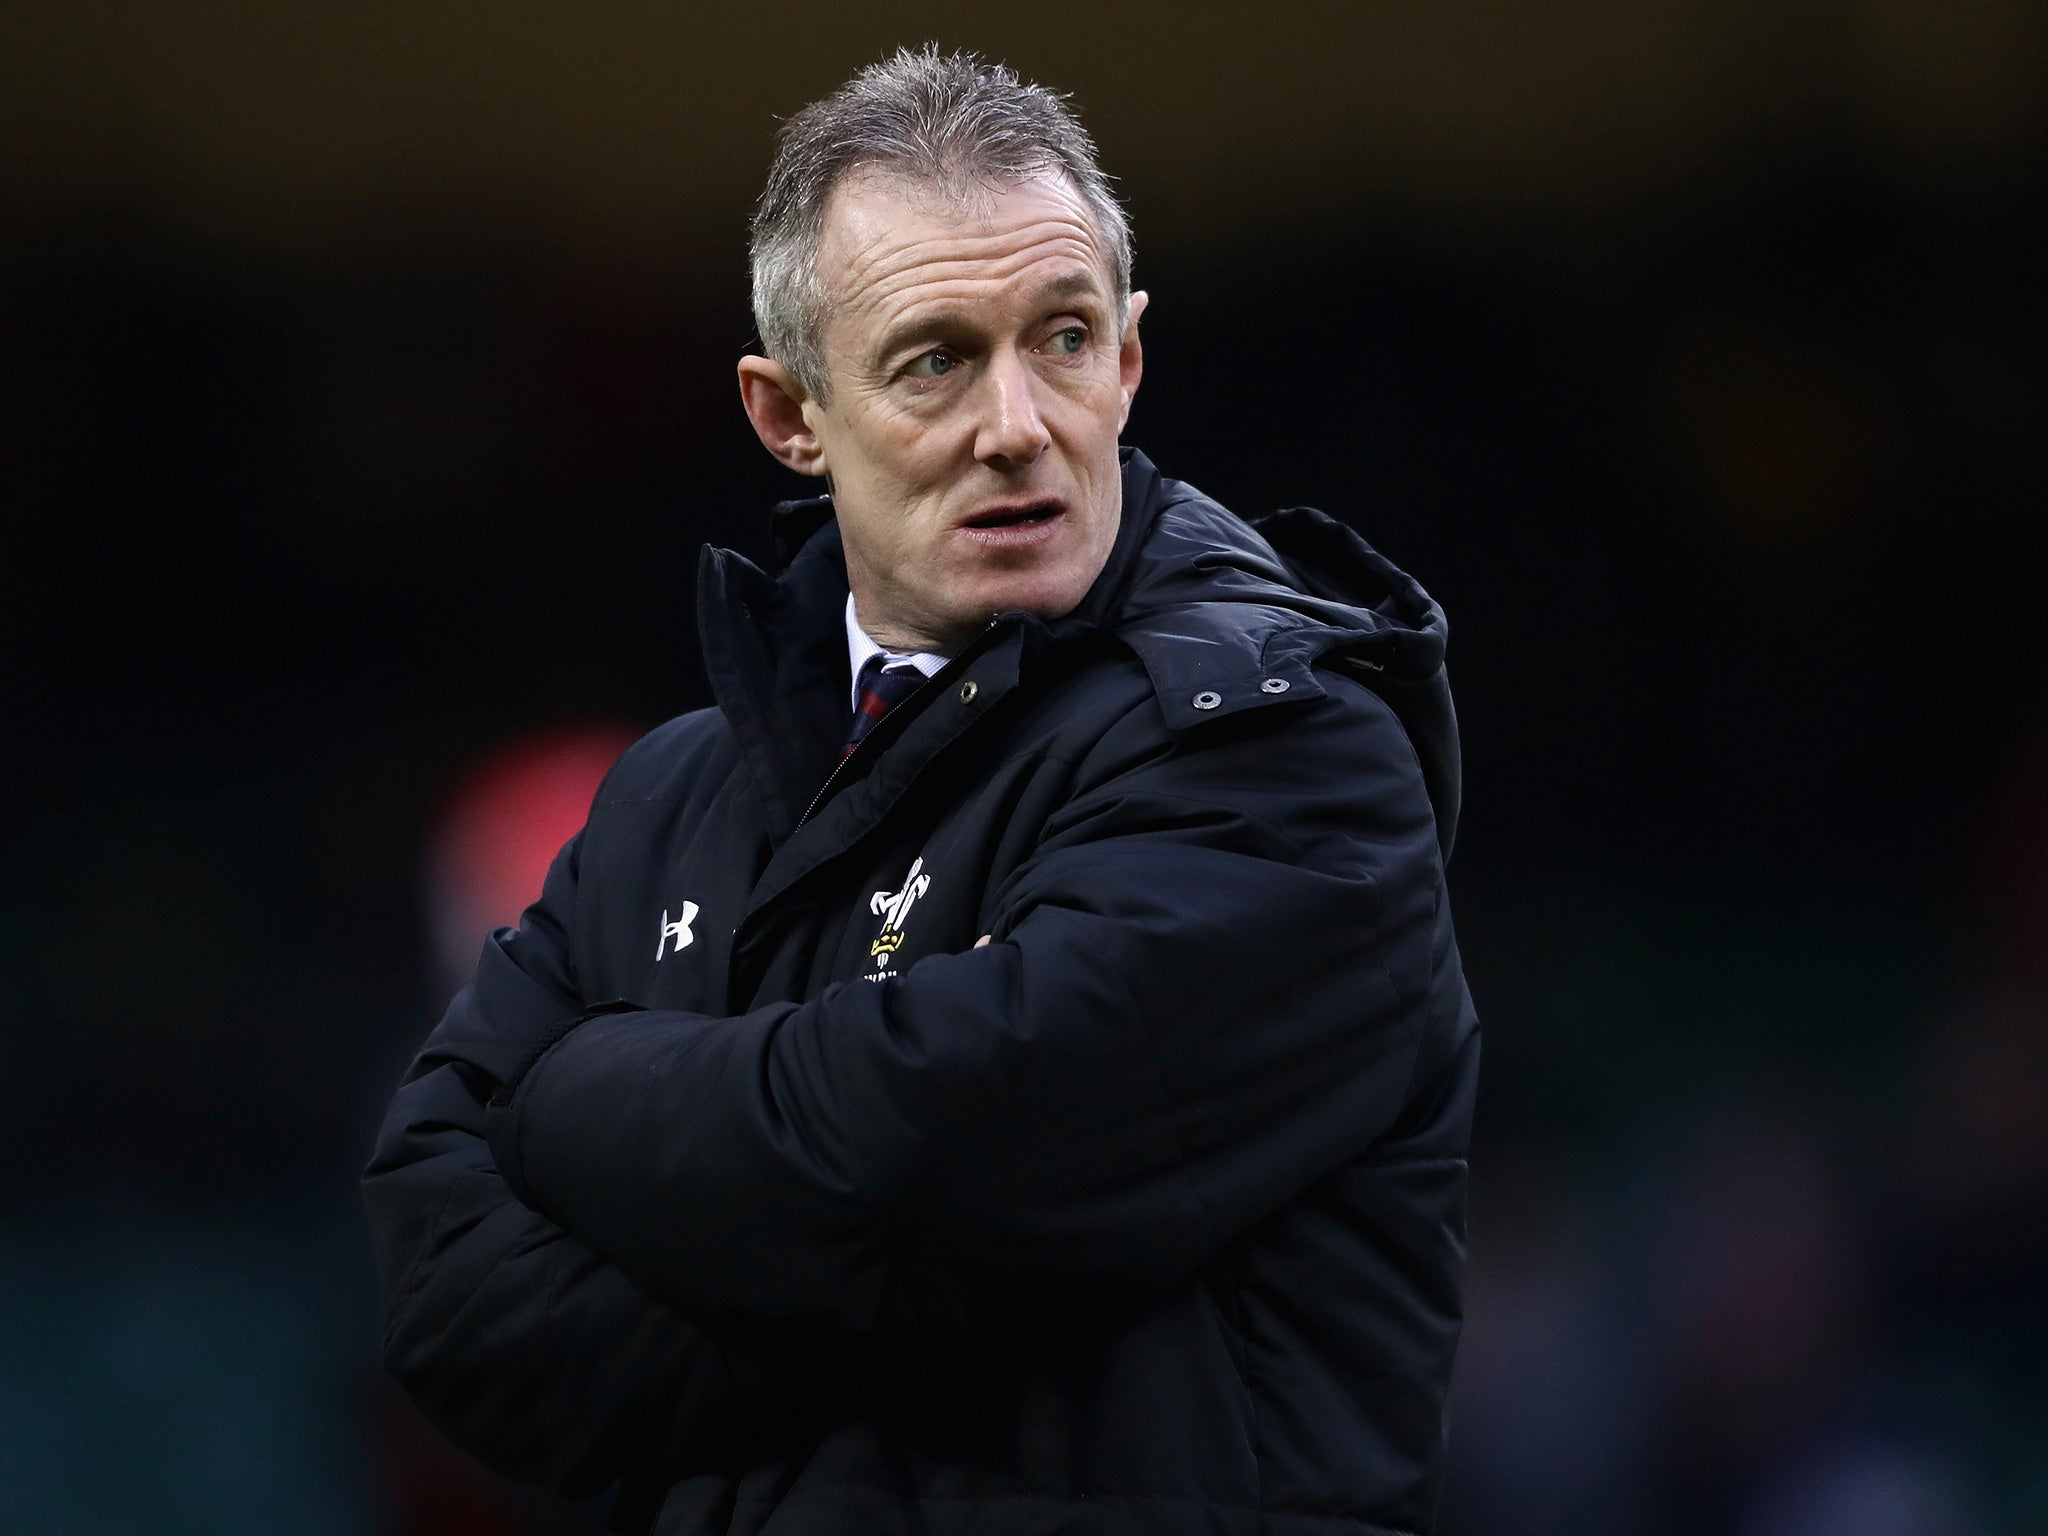 Rugby World Cup 2019: World Rugby backs WRU over Rob Howley dismissal, Samoa tattoos and Irish lineout under spotlight